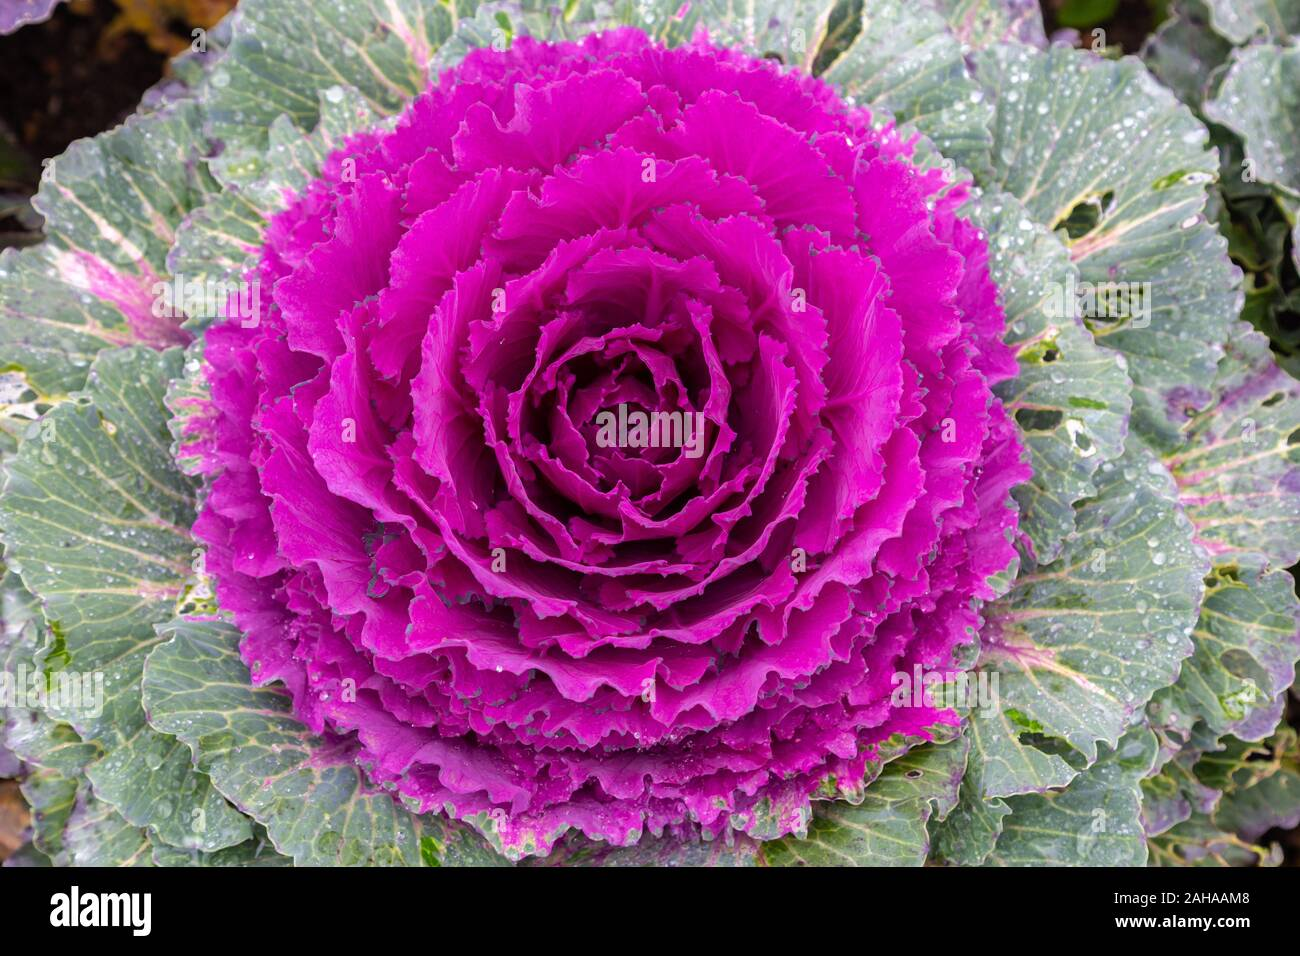 Growing Ornamental Kale Brassica Oleracea High Resolution Stock Photography And Images Alamy